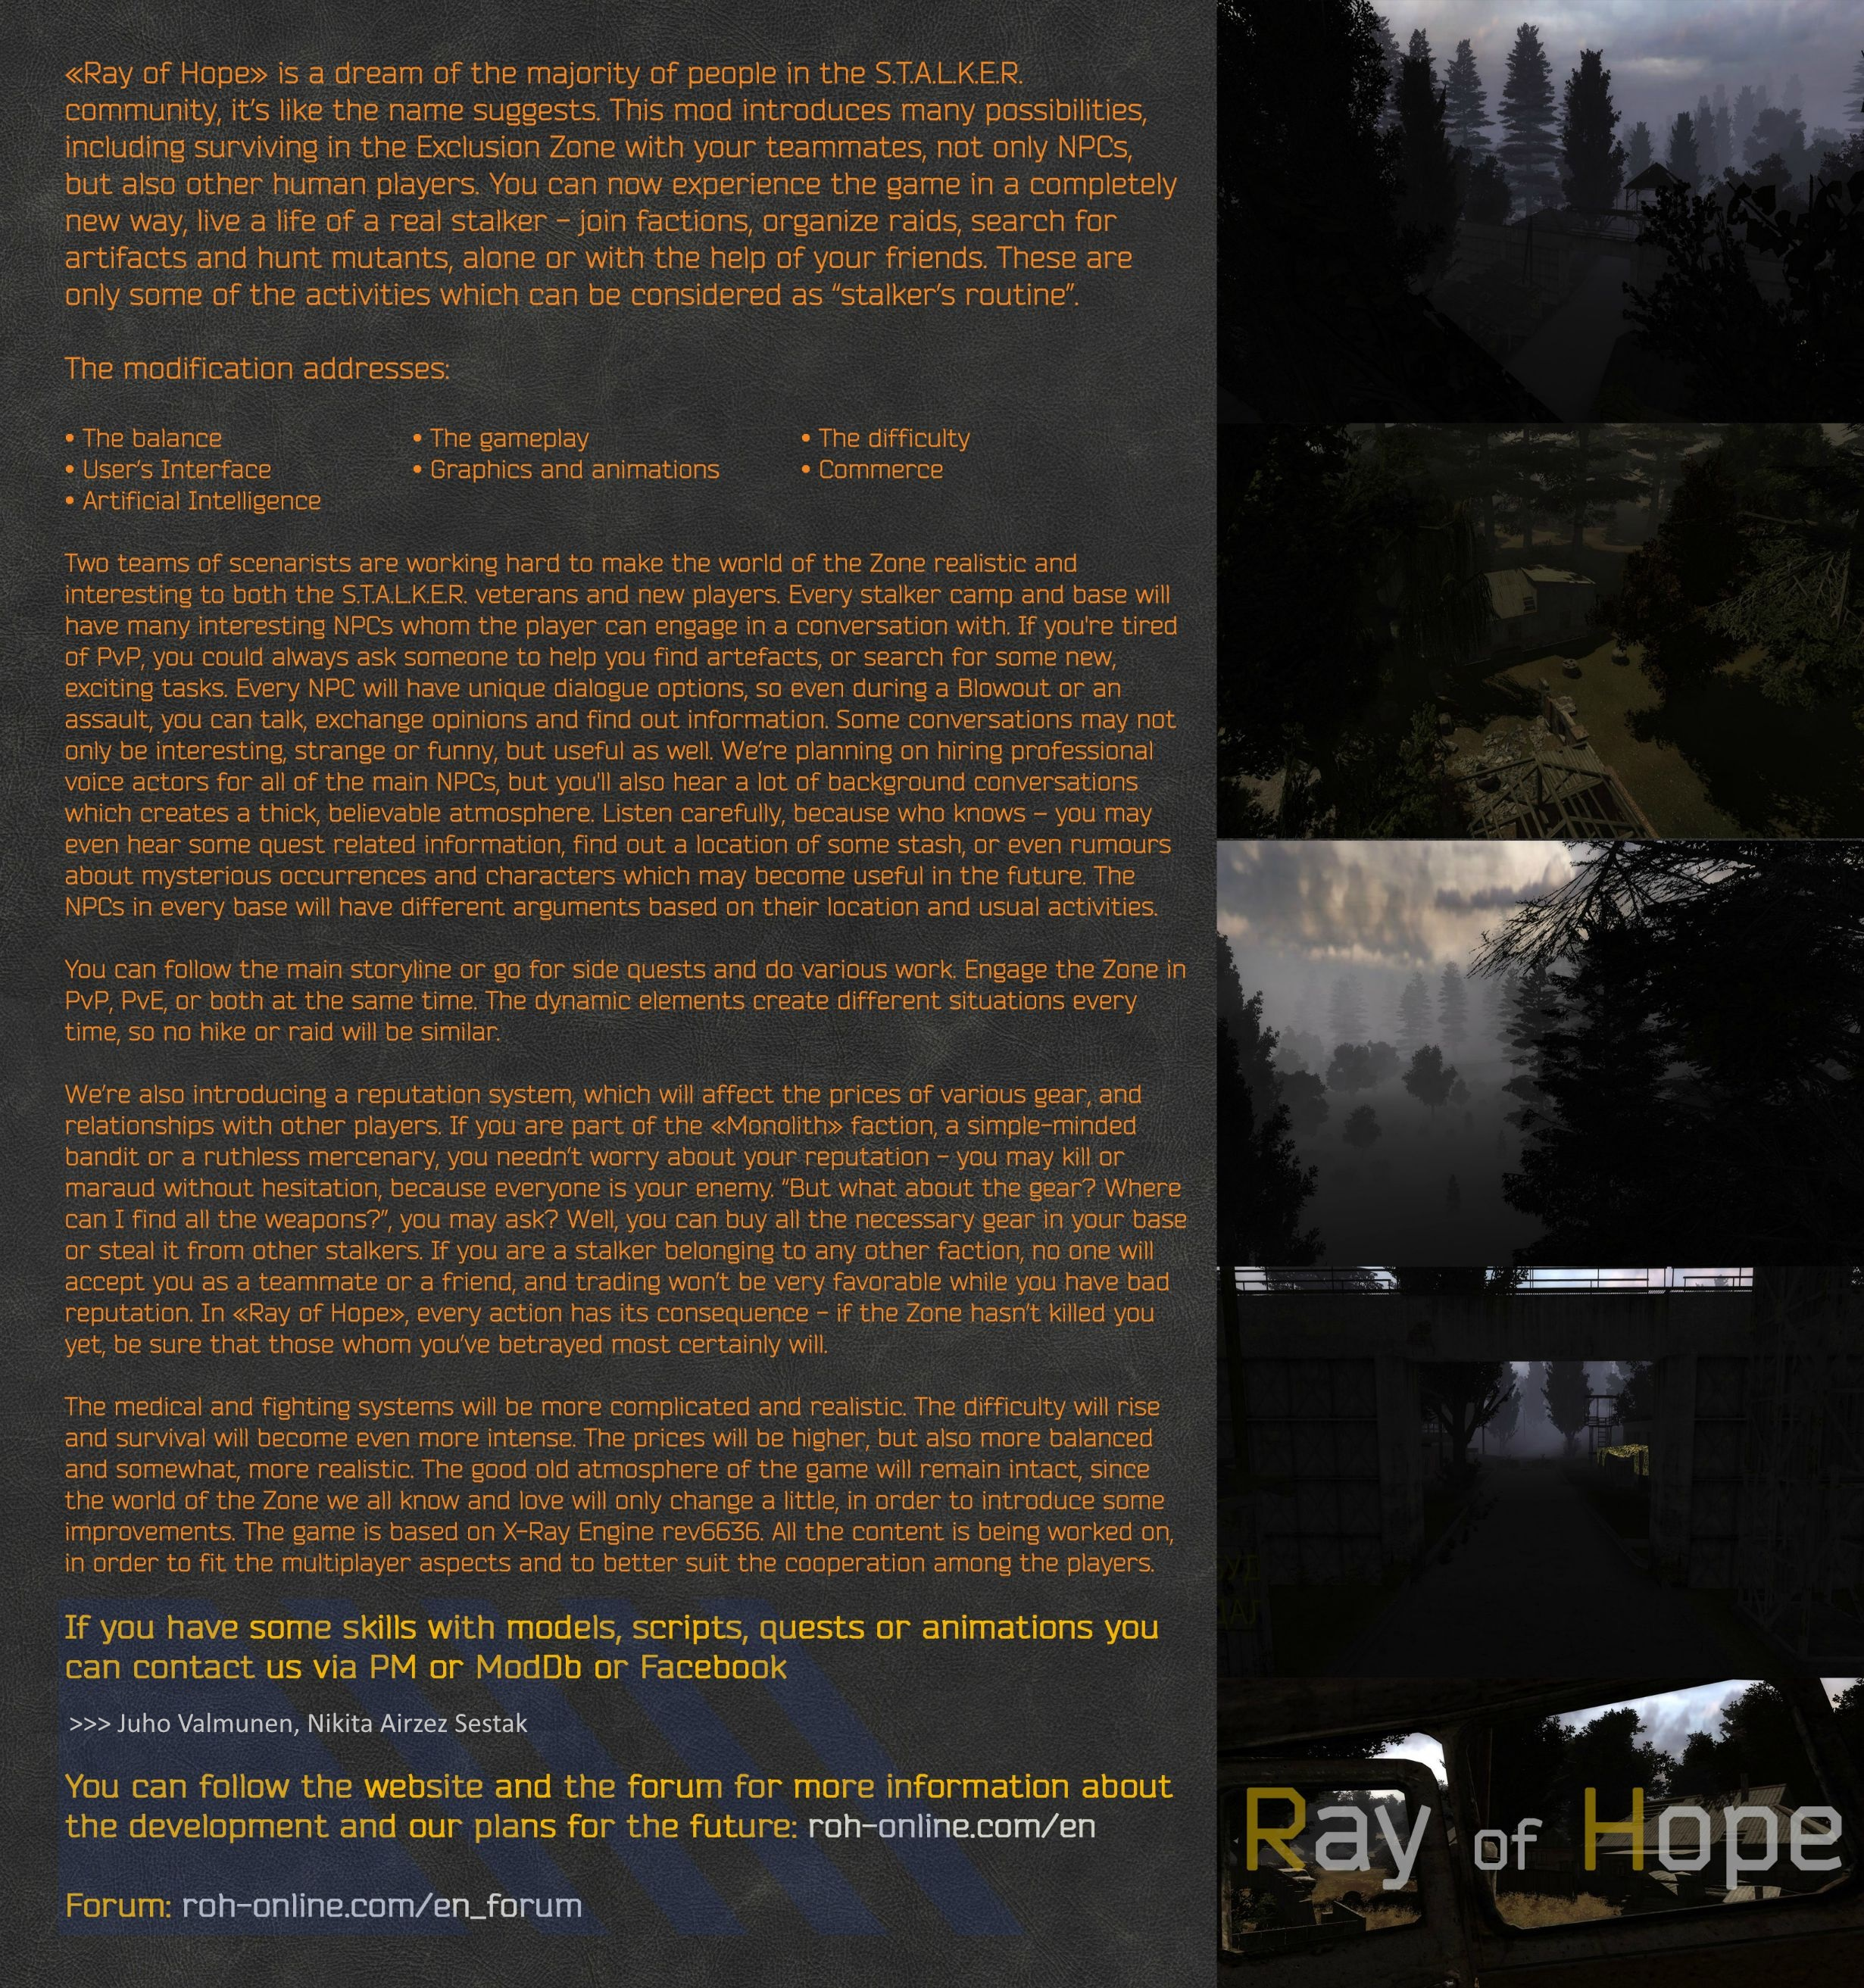 Ray of Hope mod for S T A L K E R : Call of Pripyat - Mod DB